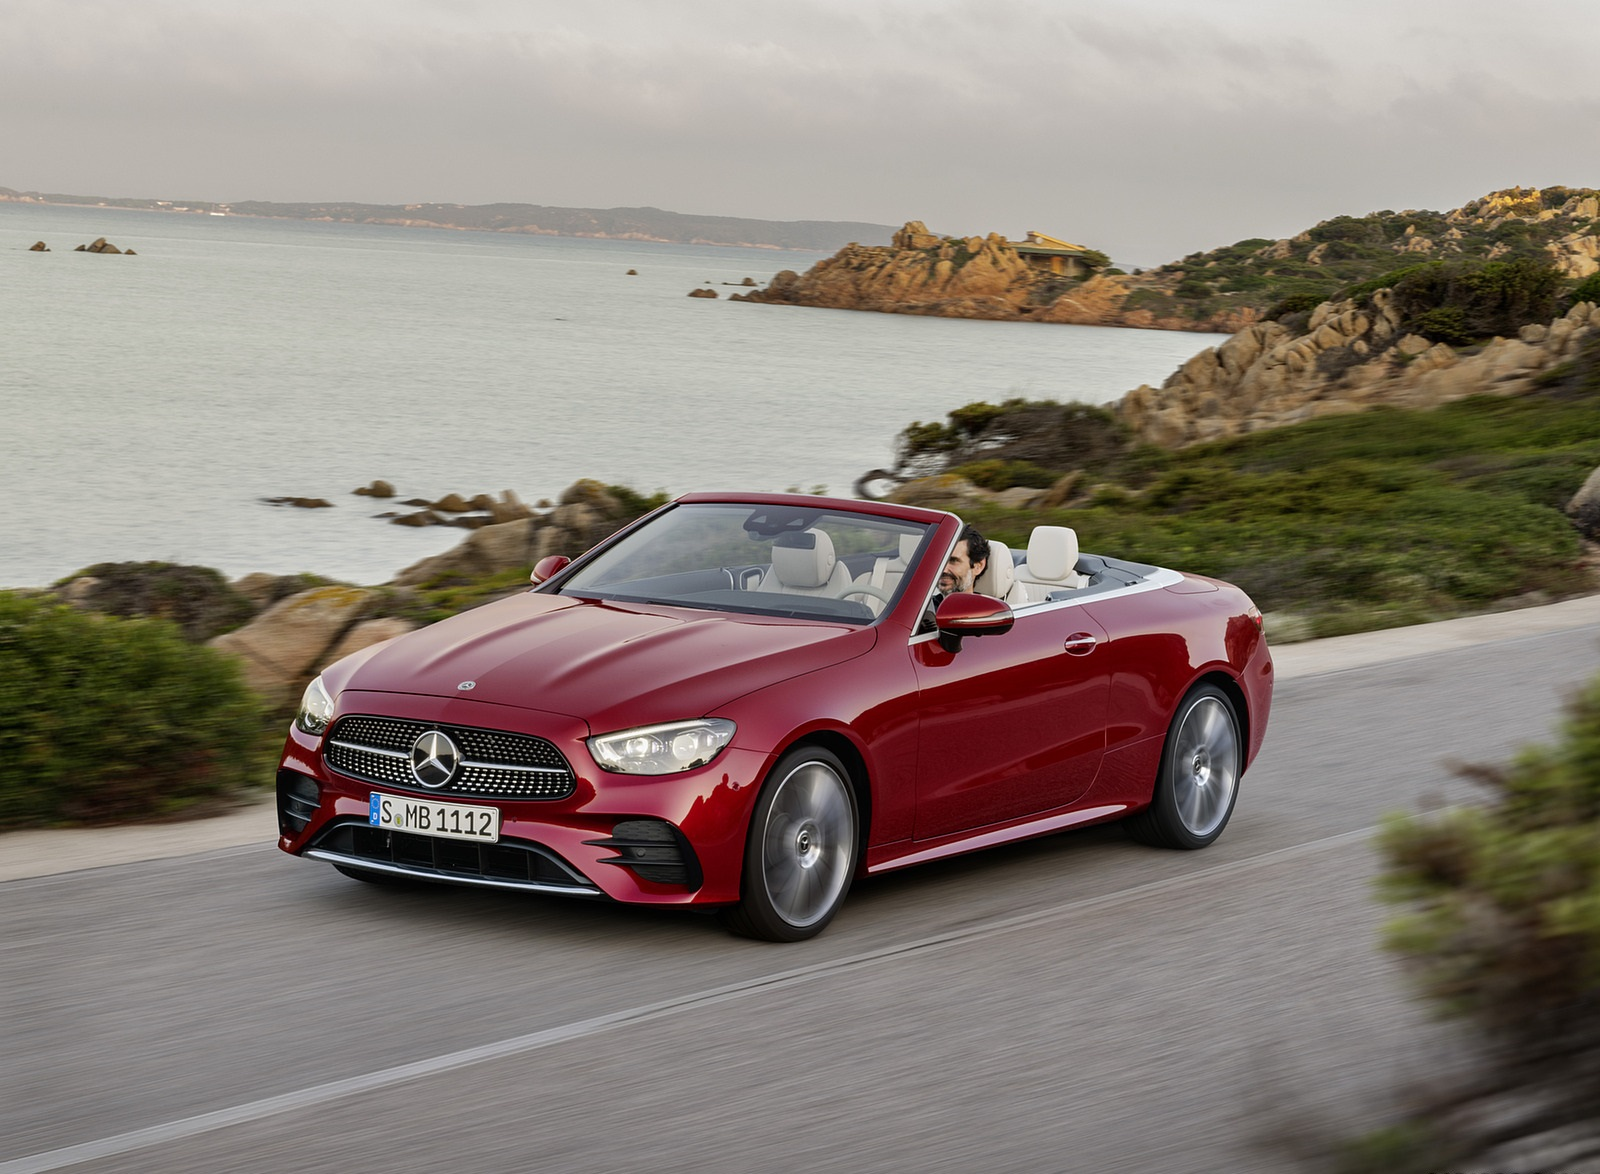 2021 Mercedes-Benz E 450 4MATIC Cabriolet AMG Line (Color: Designo Hyacinth Red Metallic) Front Three-Quarter Wallpapers (2)